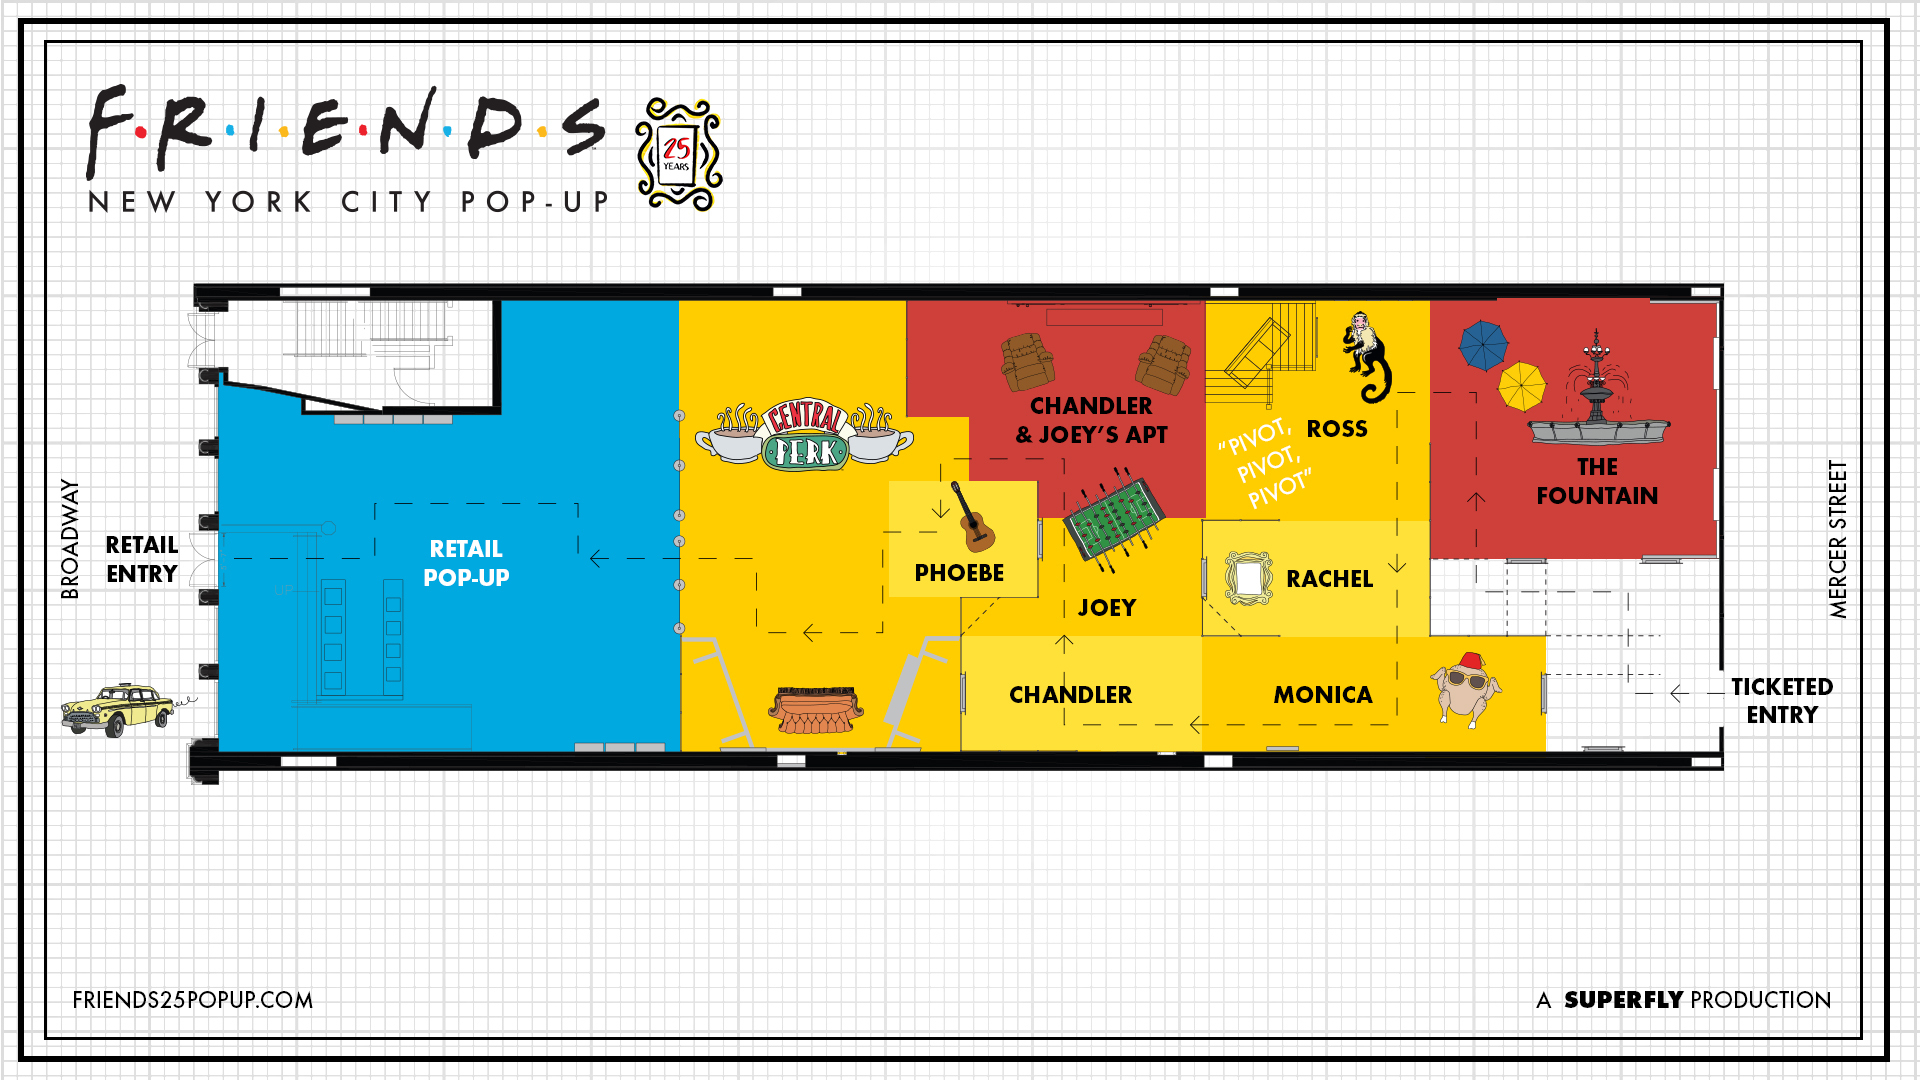 5437646_080219-wabc-friends-popup-experience-nyc-map-picture